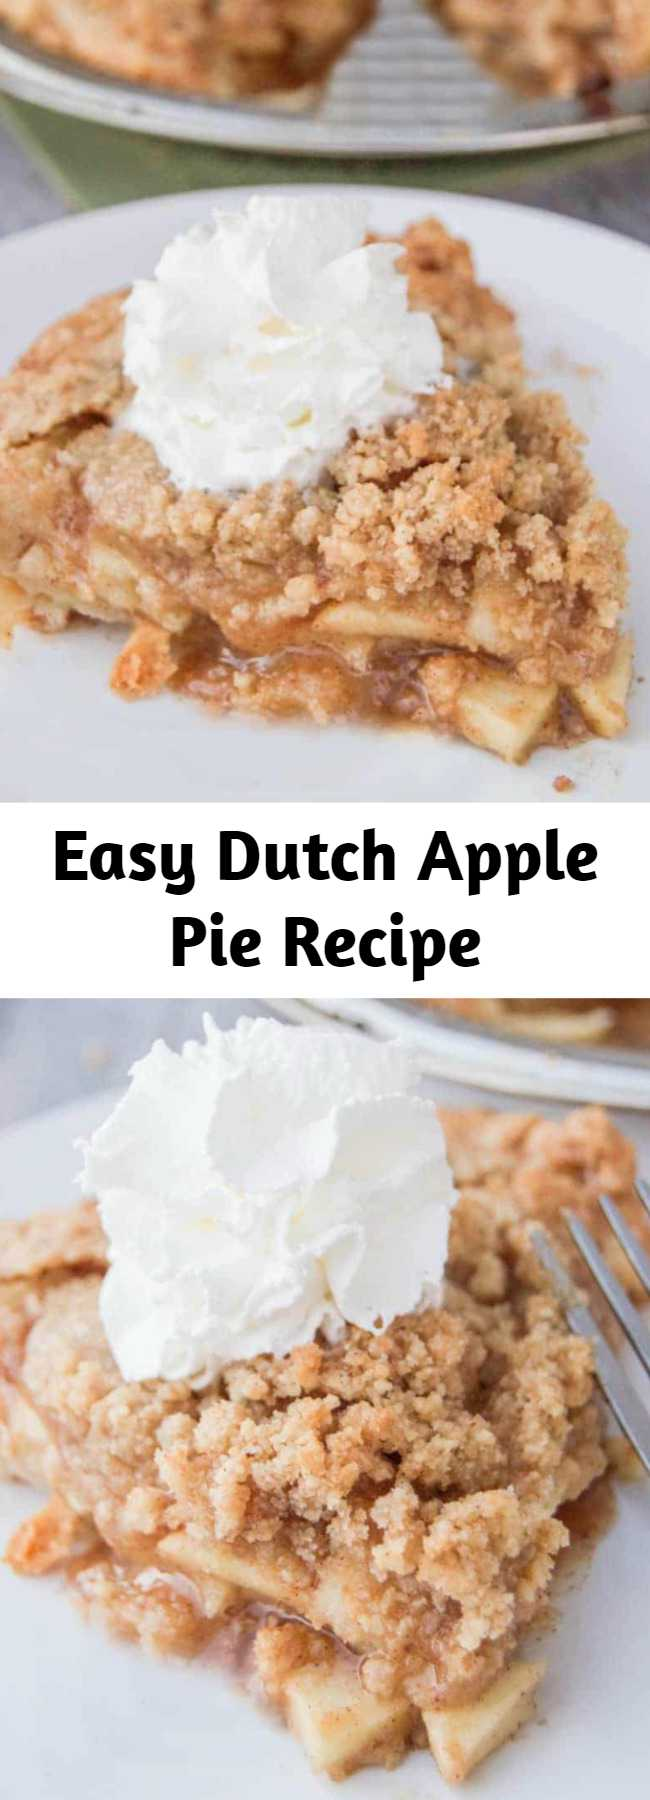 Easy Dutch Apple Pie Recipe - Dutch Apple Pie is one of my all time favorites. Something about warm apples, brown sugar, and whipped cream that make the perfect combination. This pie has rave reviews and is loved by everyone. You need to make sure that you pin this one for the holidays!!